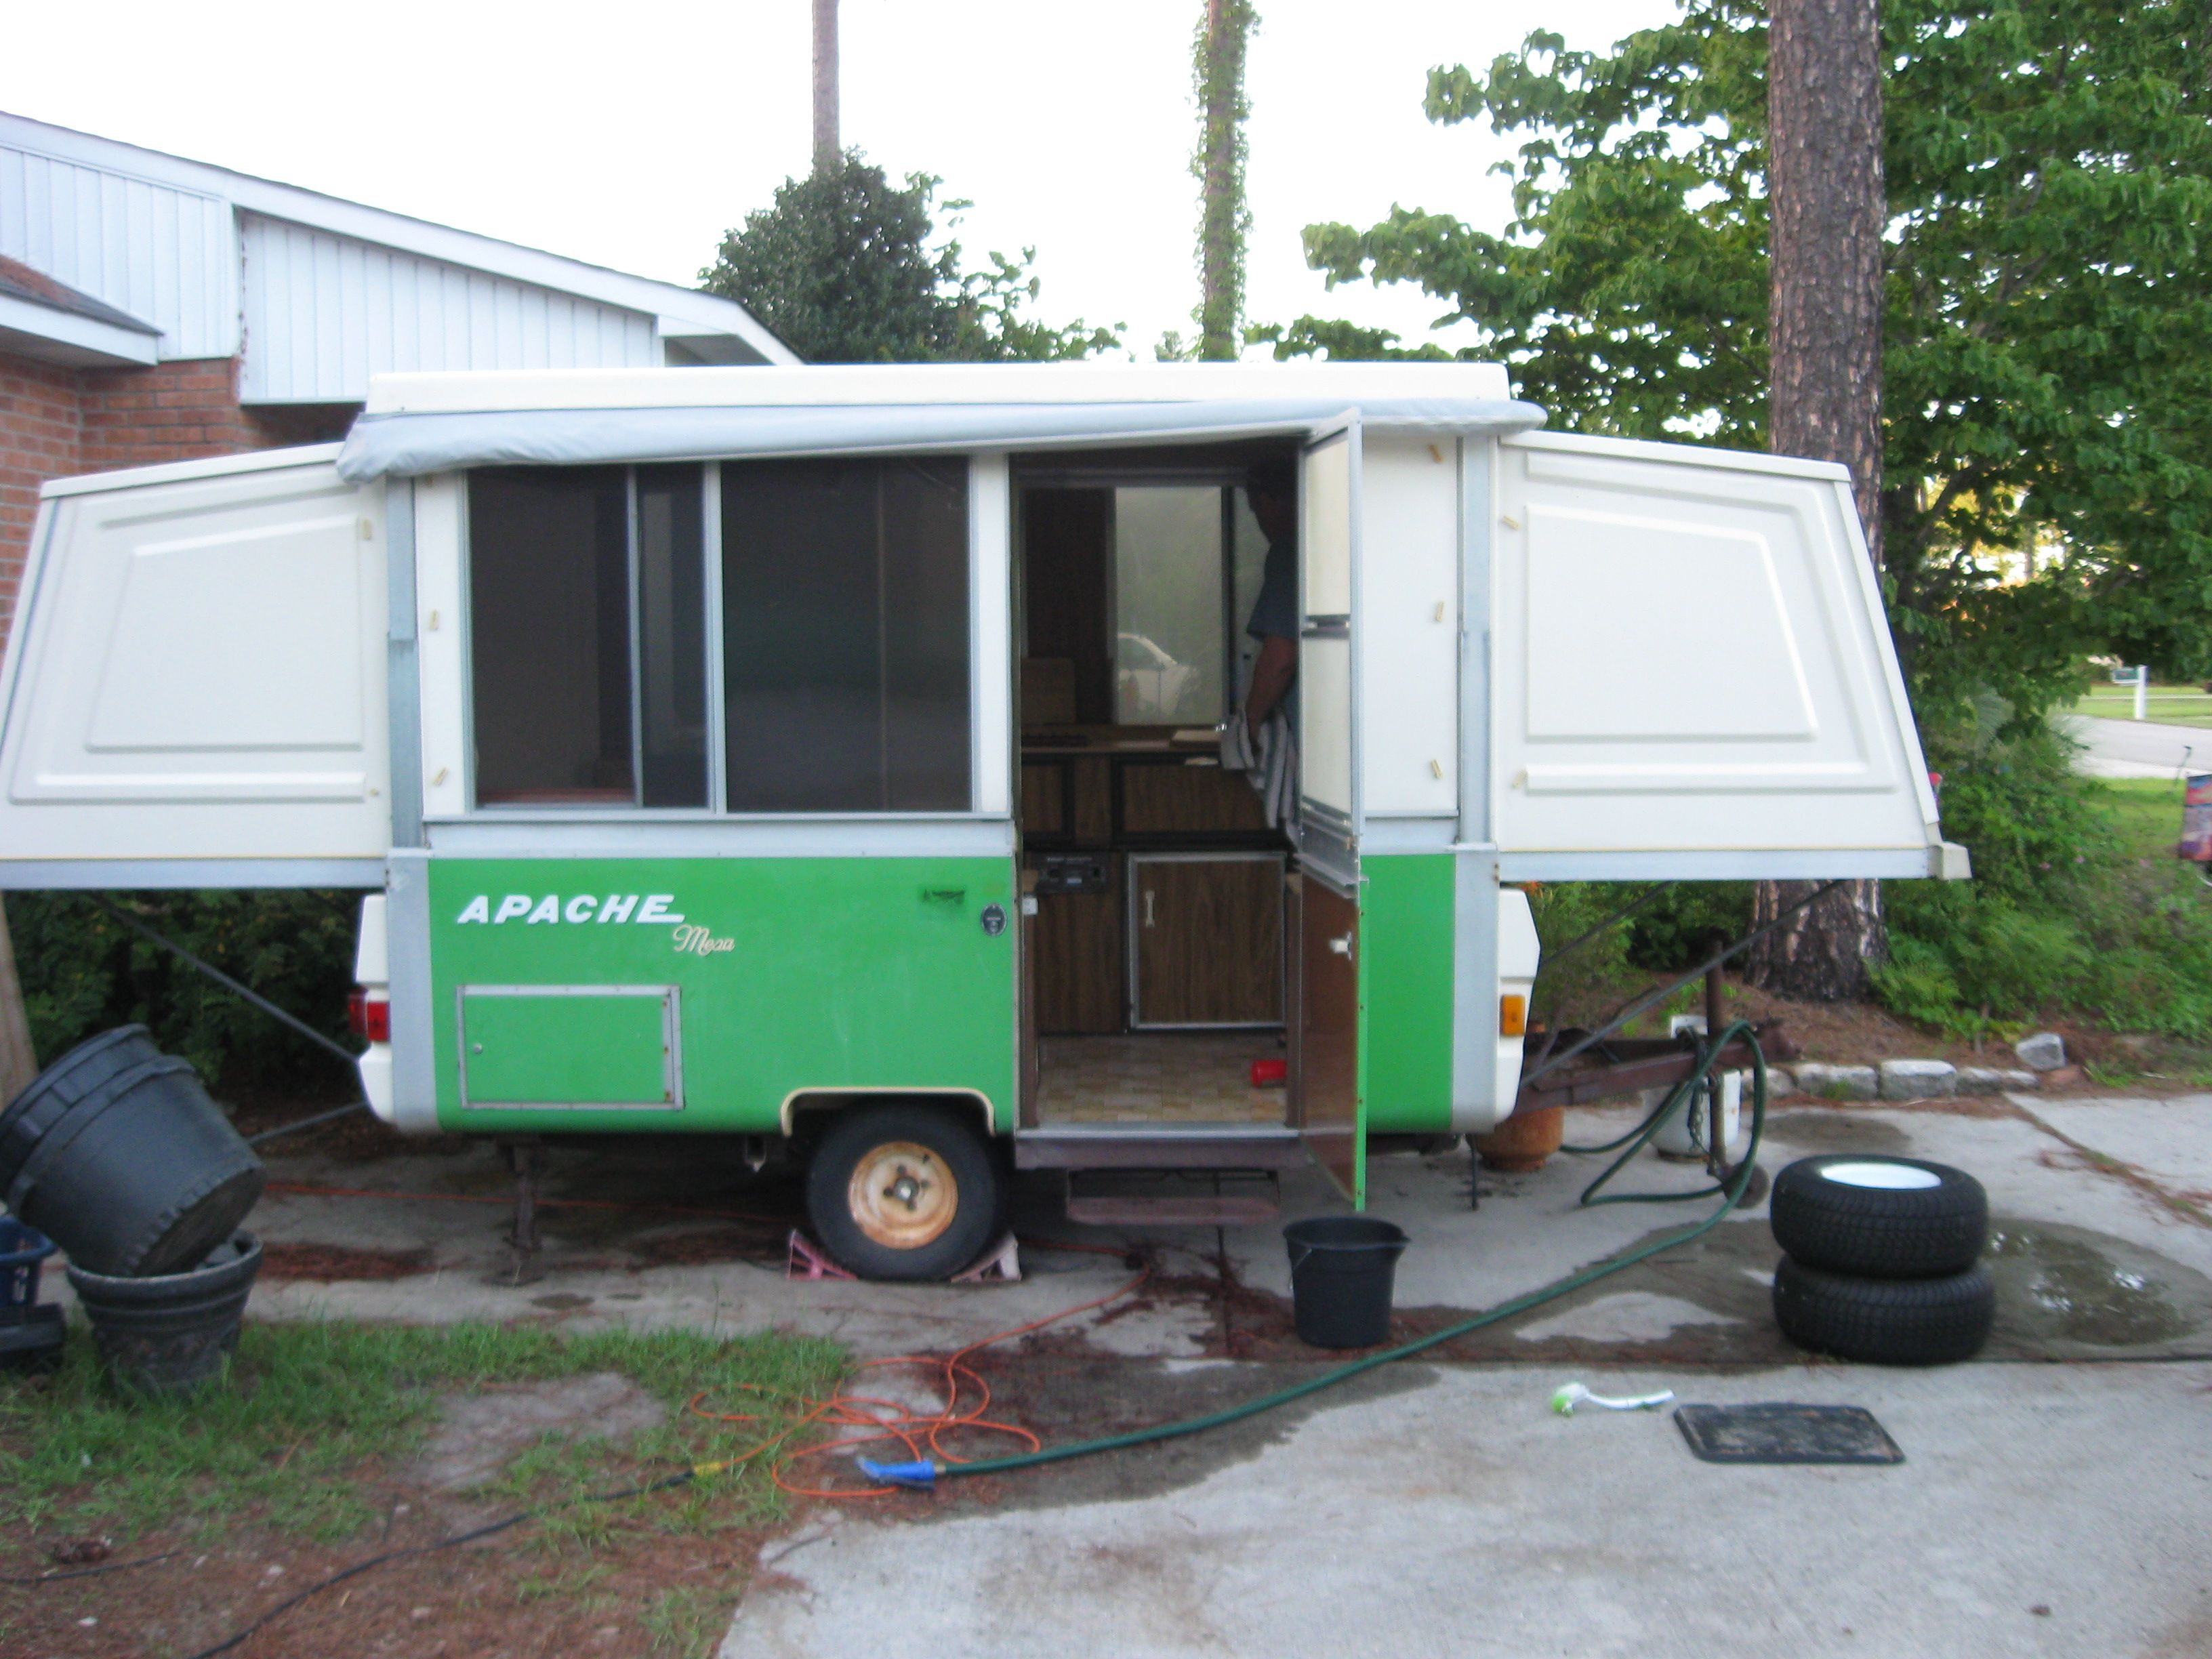 Mesa Camper Our 1977 Apache Mesa Camper Its Vintage And The Perfect